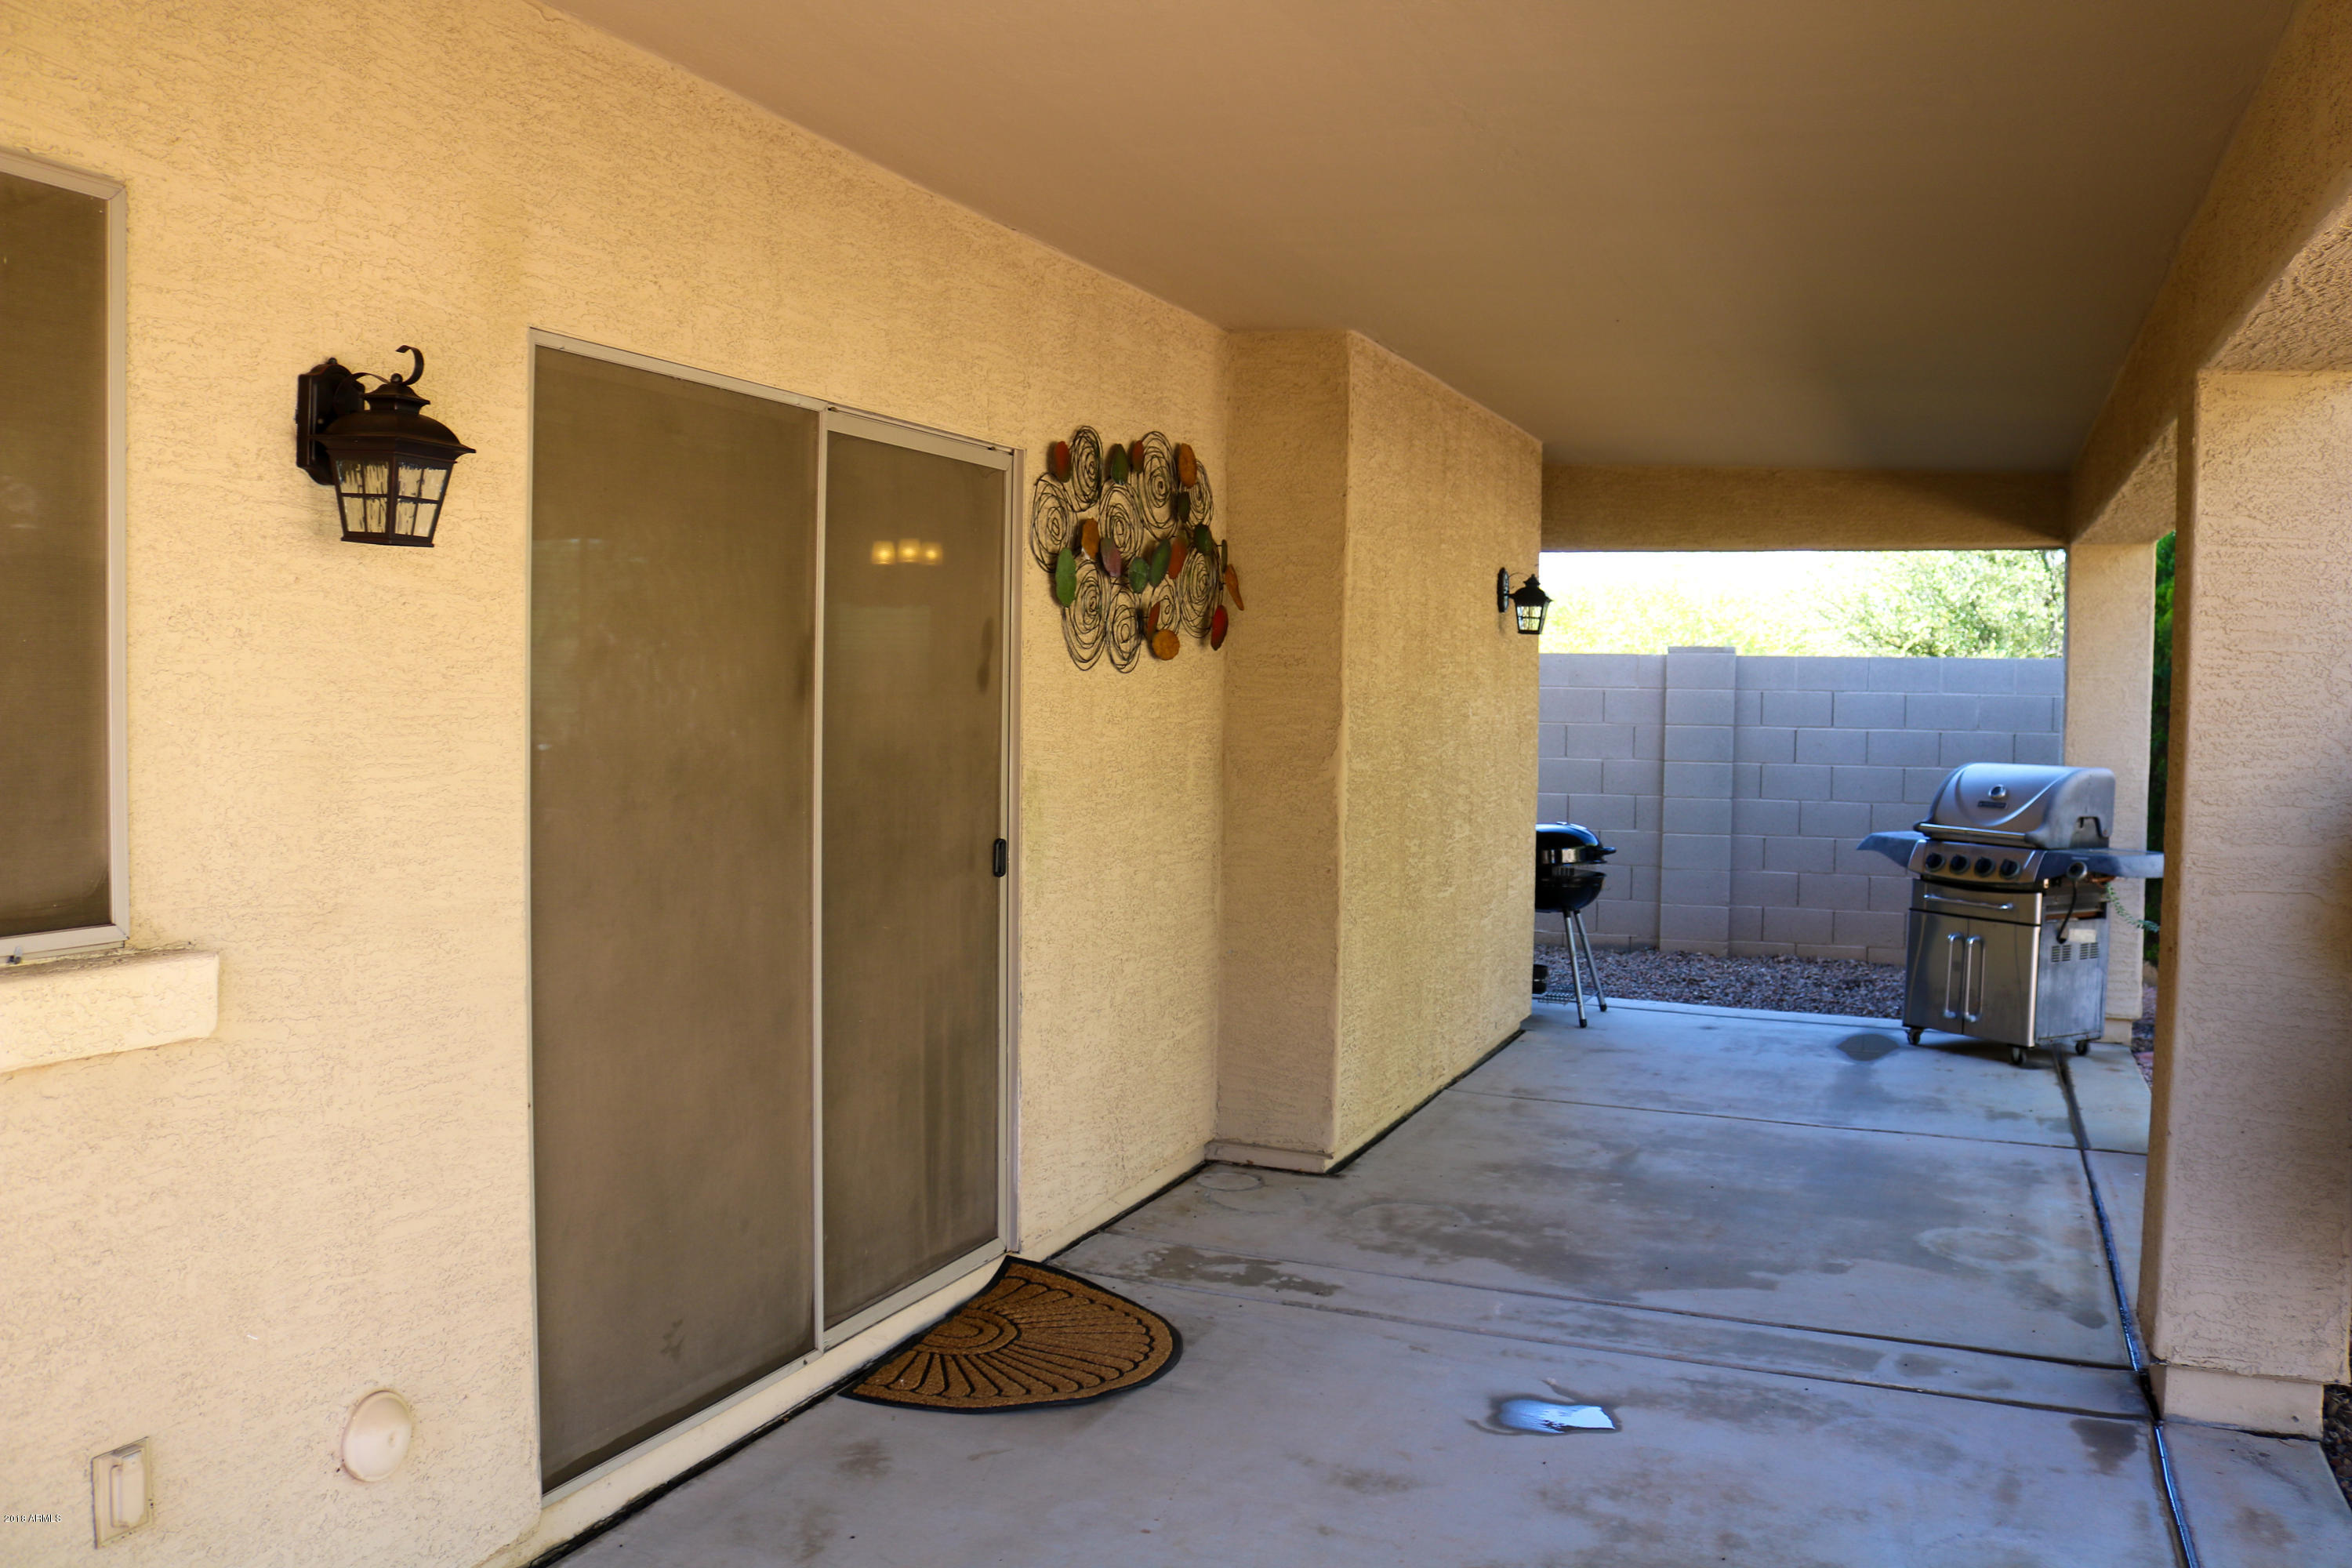 MLS 5831172 7128 W WILLIAMS Street, Phoenix, AZ 85043 Phoenix AZ Sienna Vista